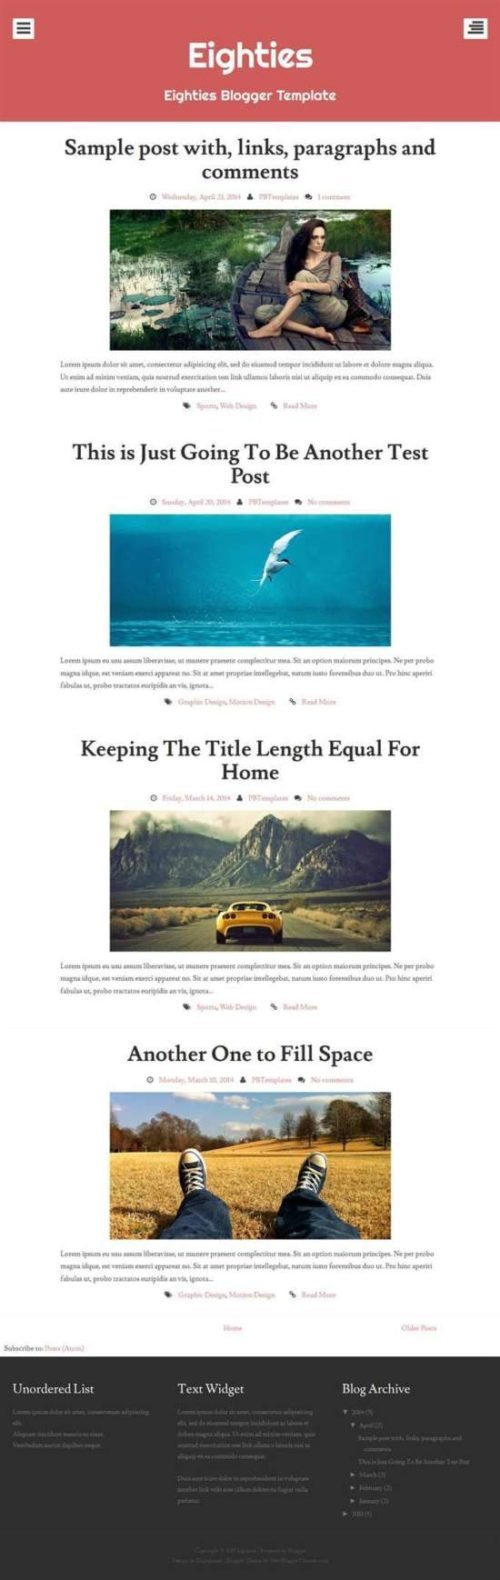 Eighties responsive personal blog blogger template